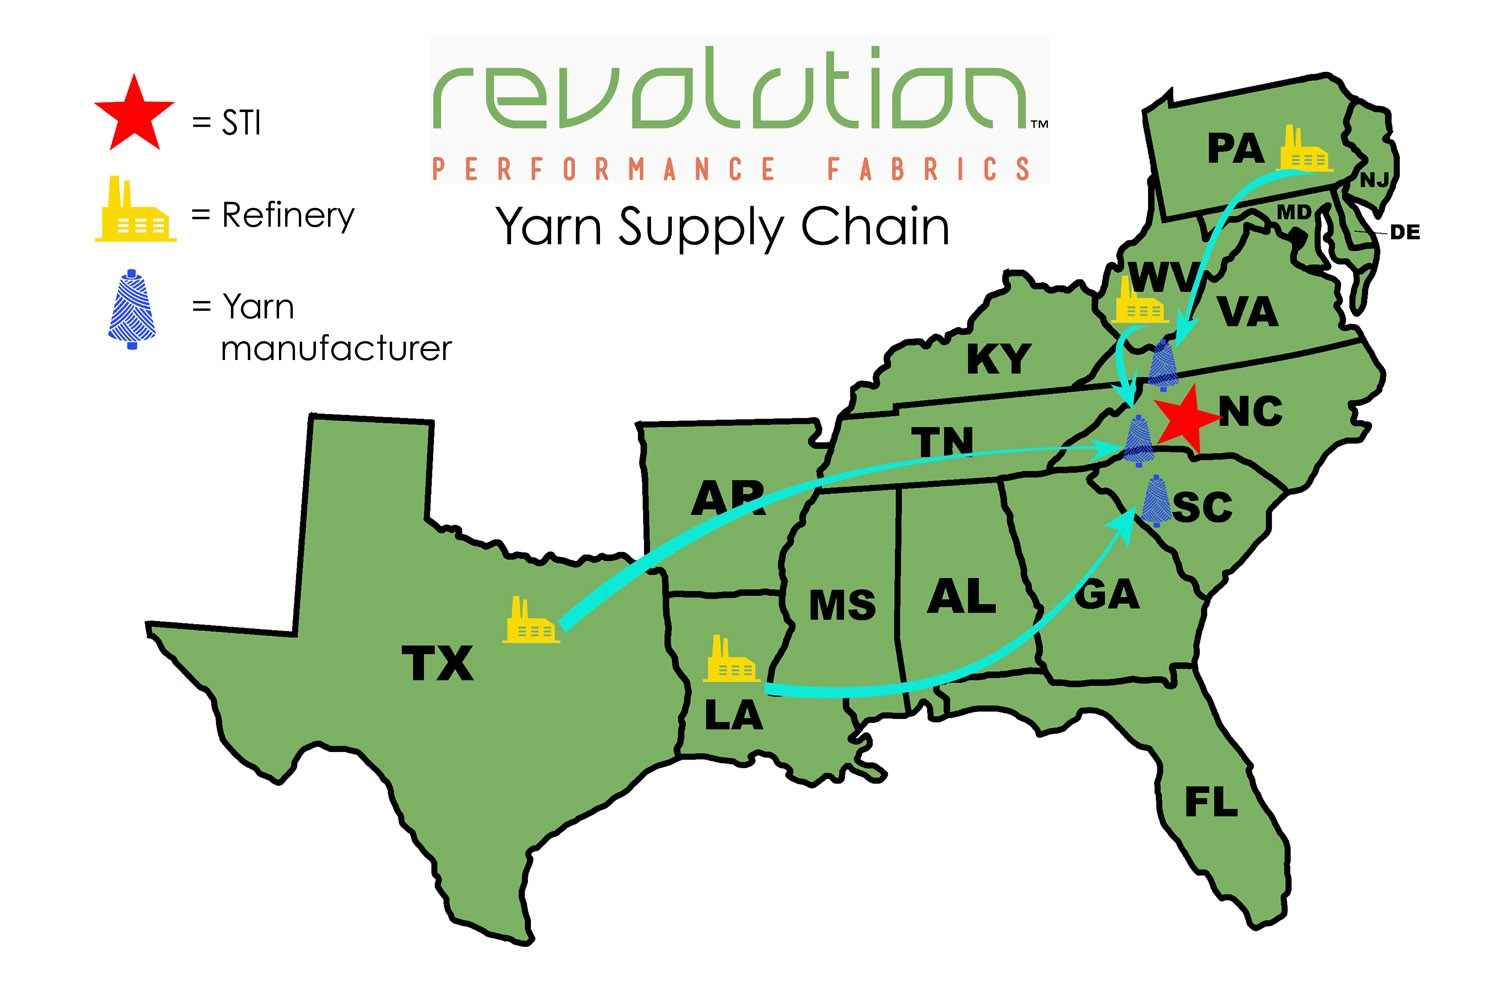 STI's Yarn Supply Chain - Revolution is 100% made in the United States!